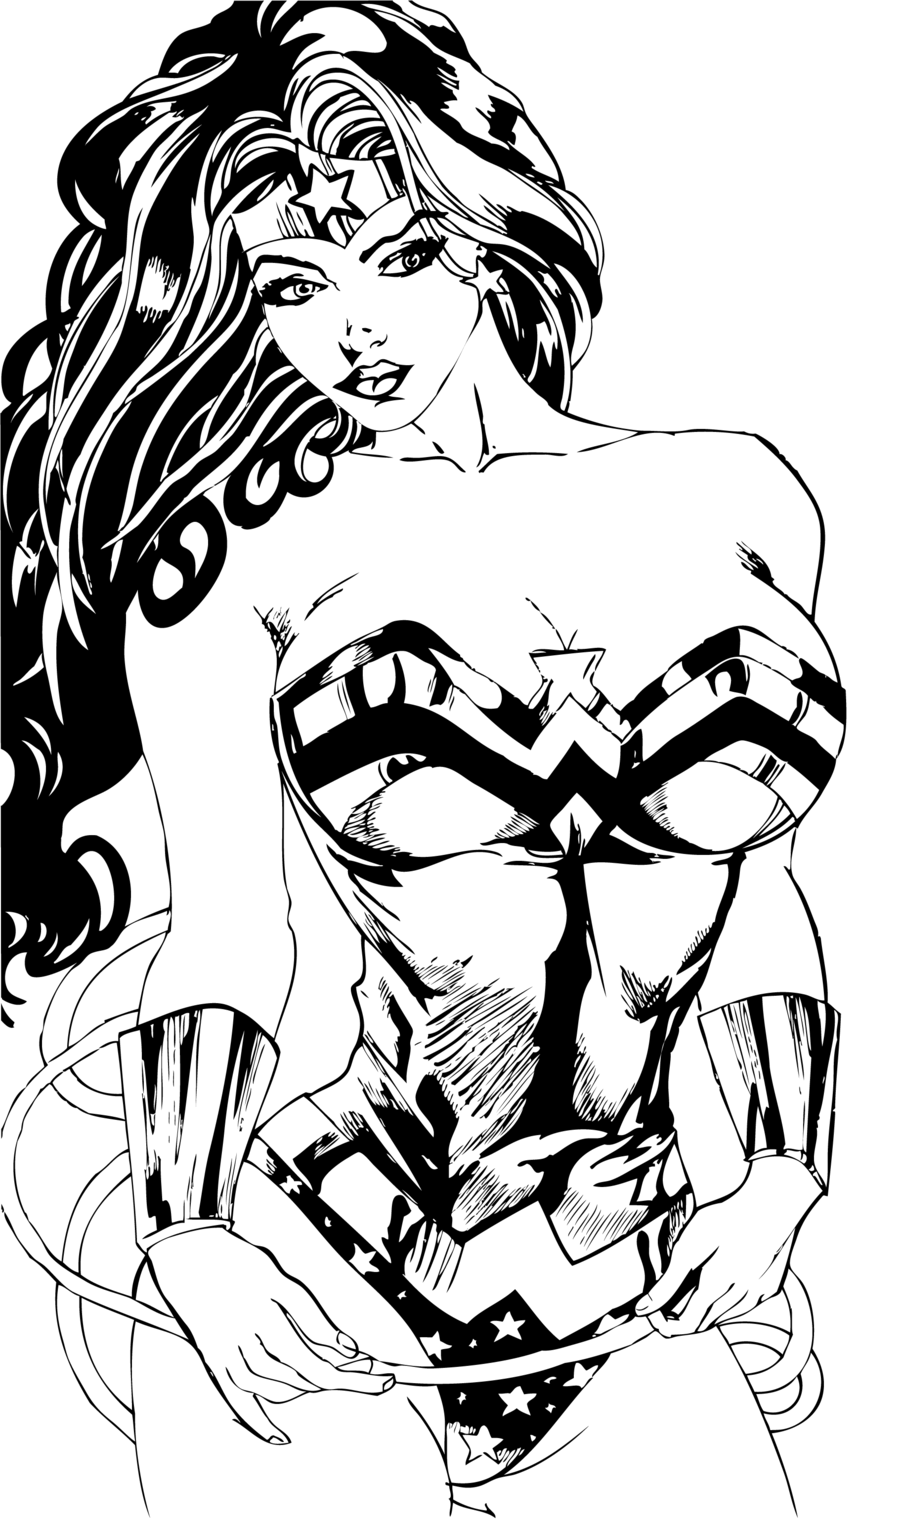 black and white super hero women drawings clipart Black and white Wonder Woman Sketch